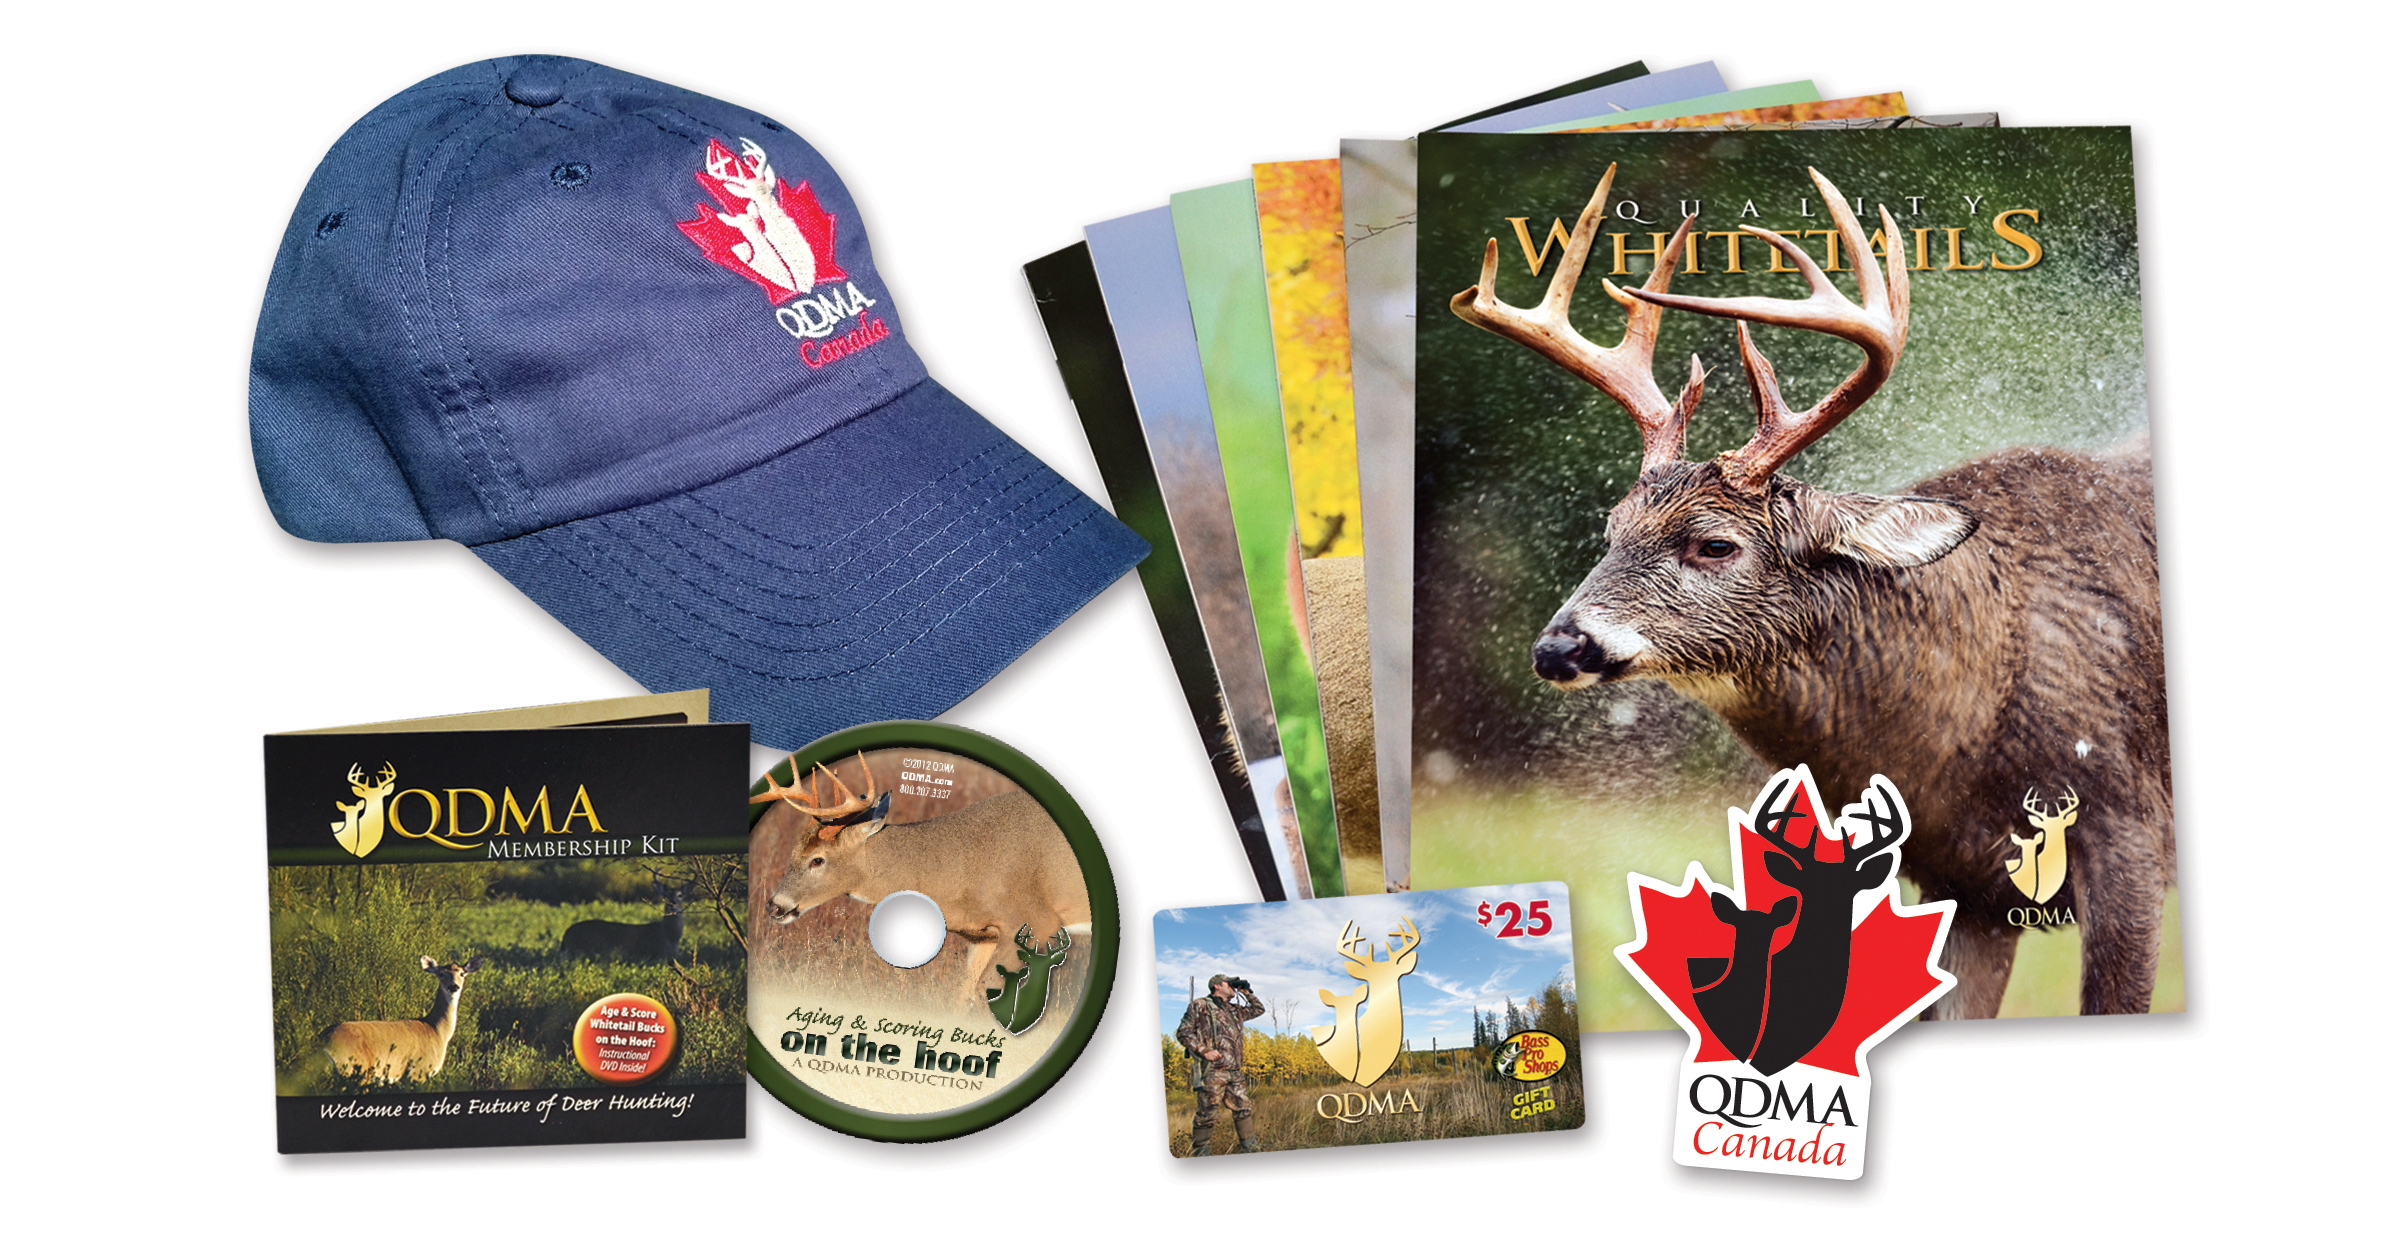 QDMA Canada 3 Year Membership Gifts